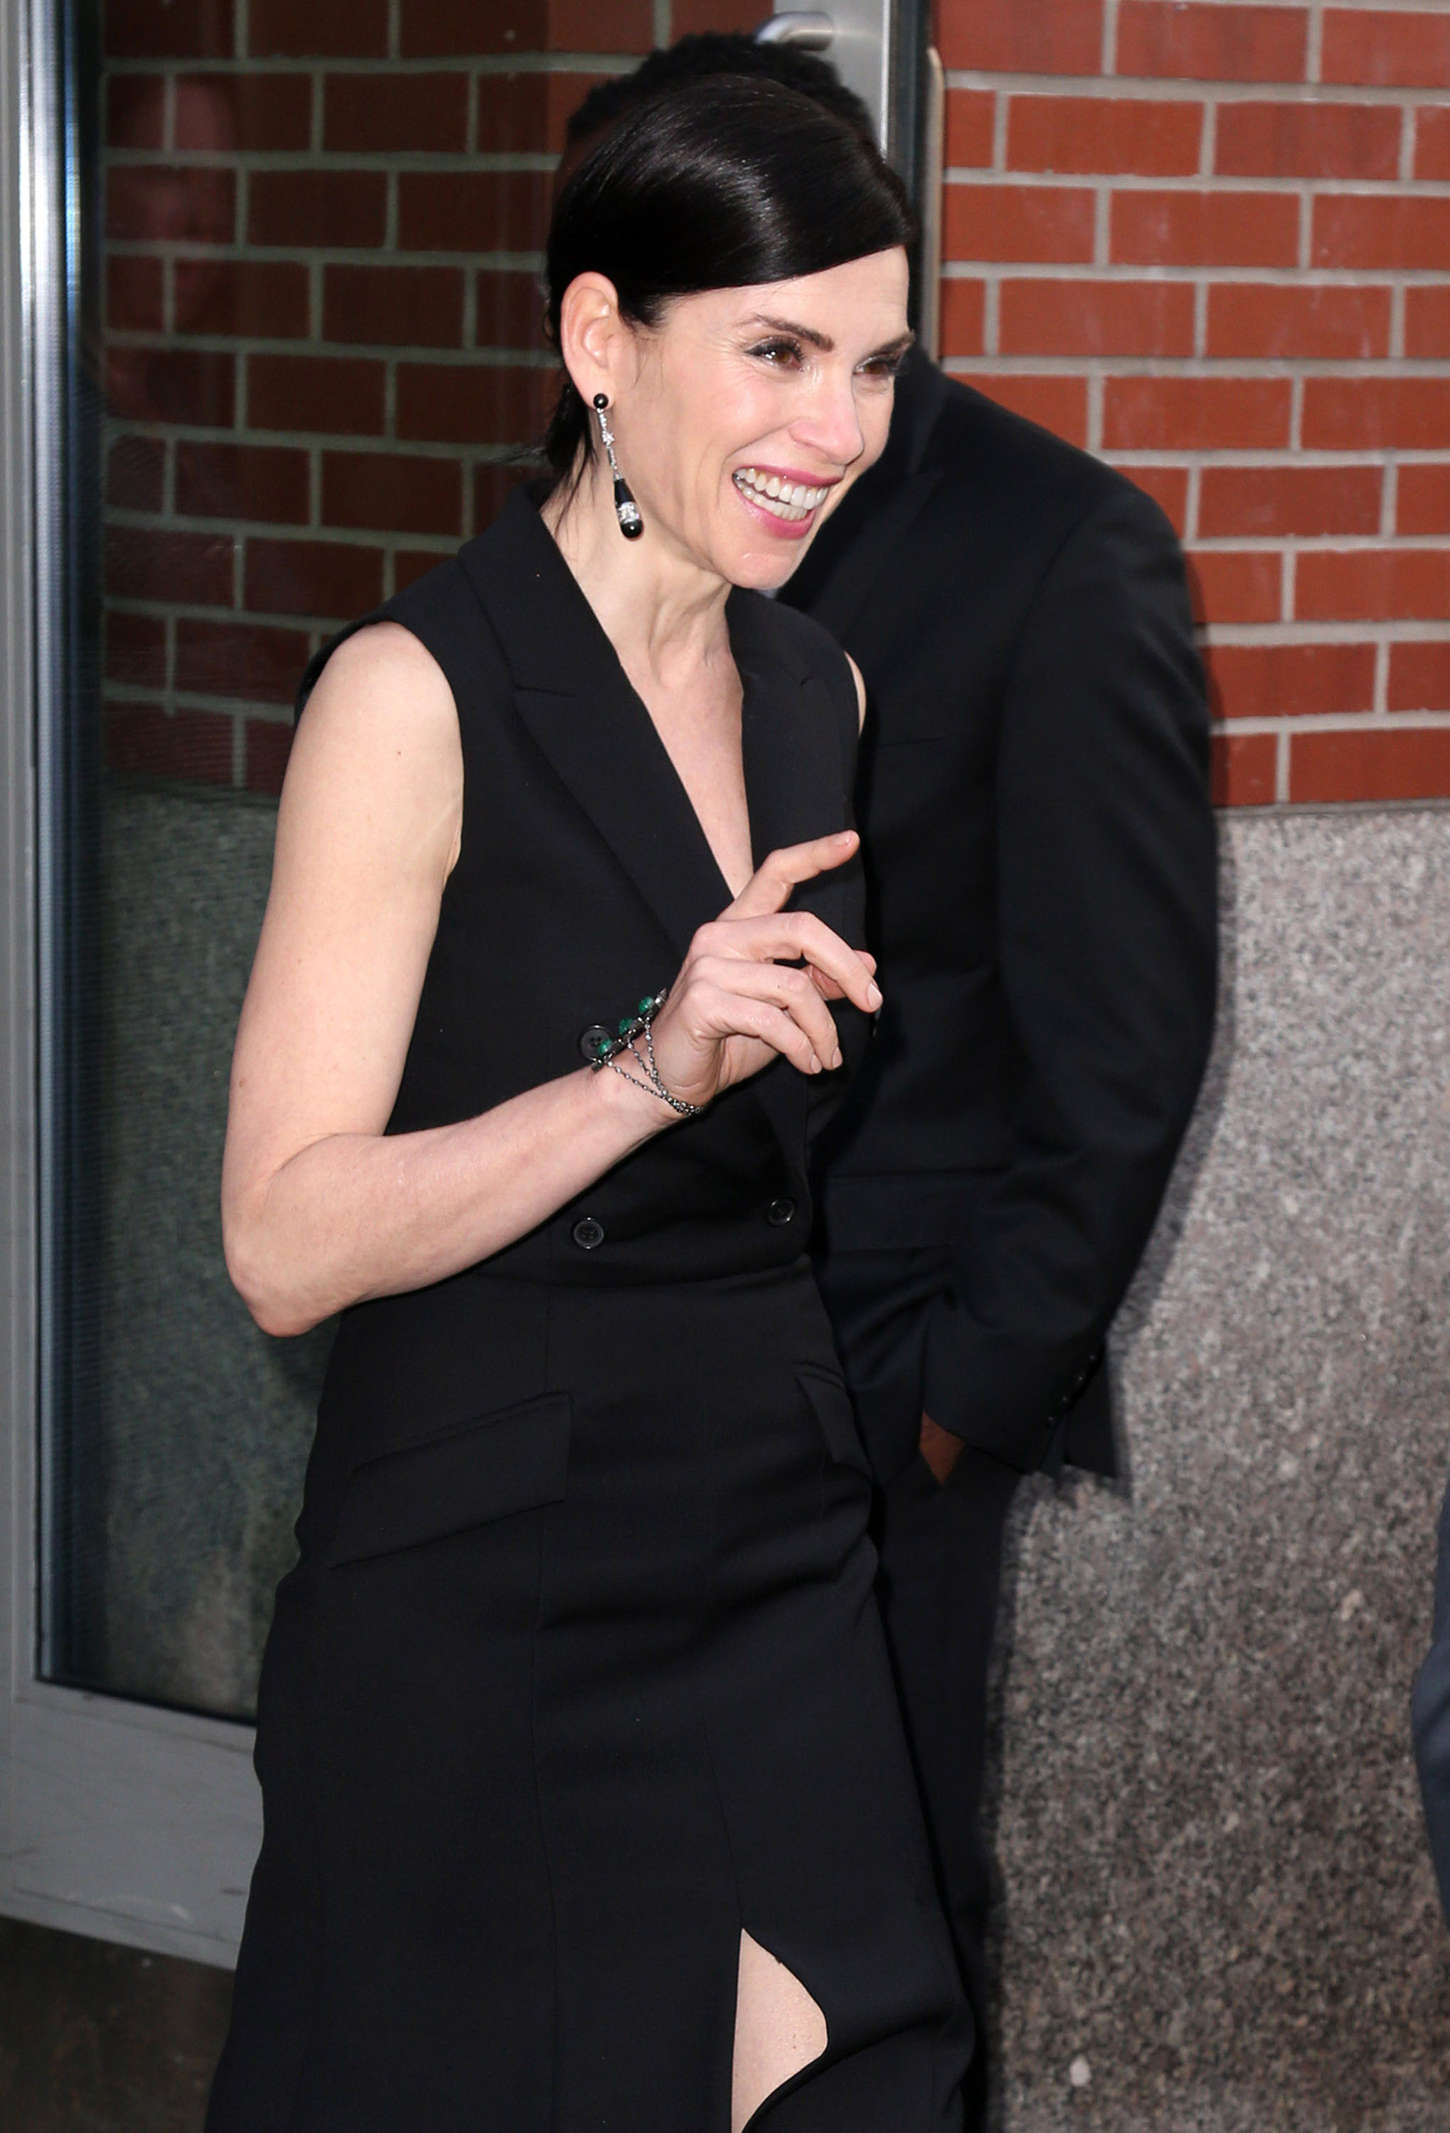 Julianna Margulies Leaving her apartment in New York